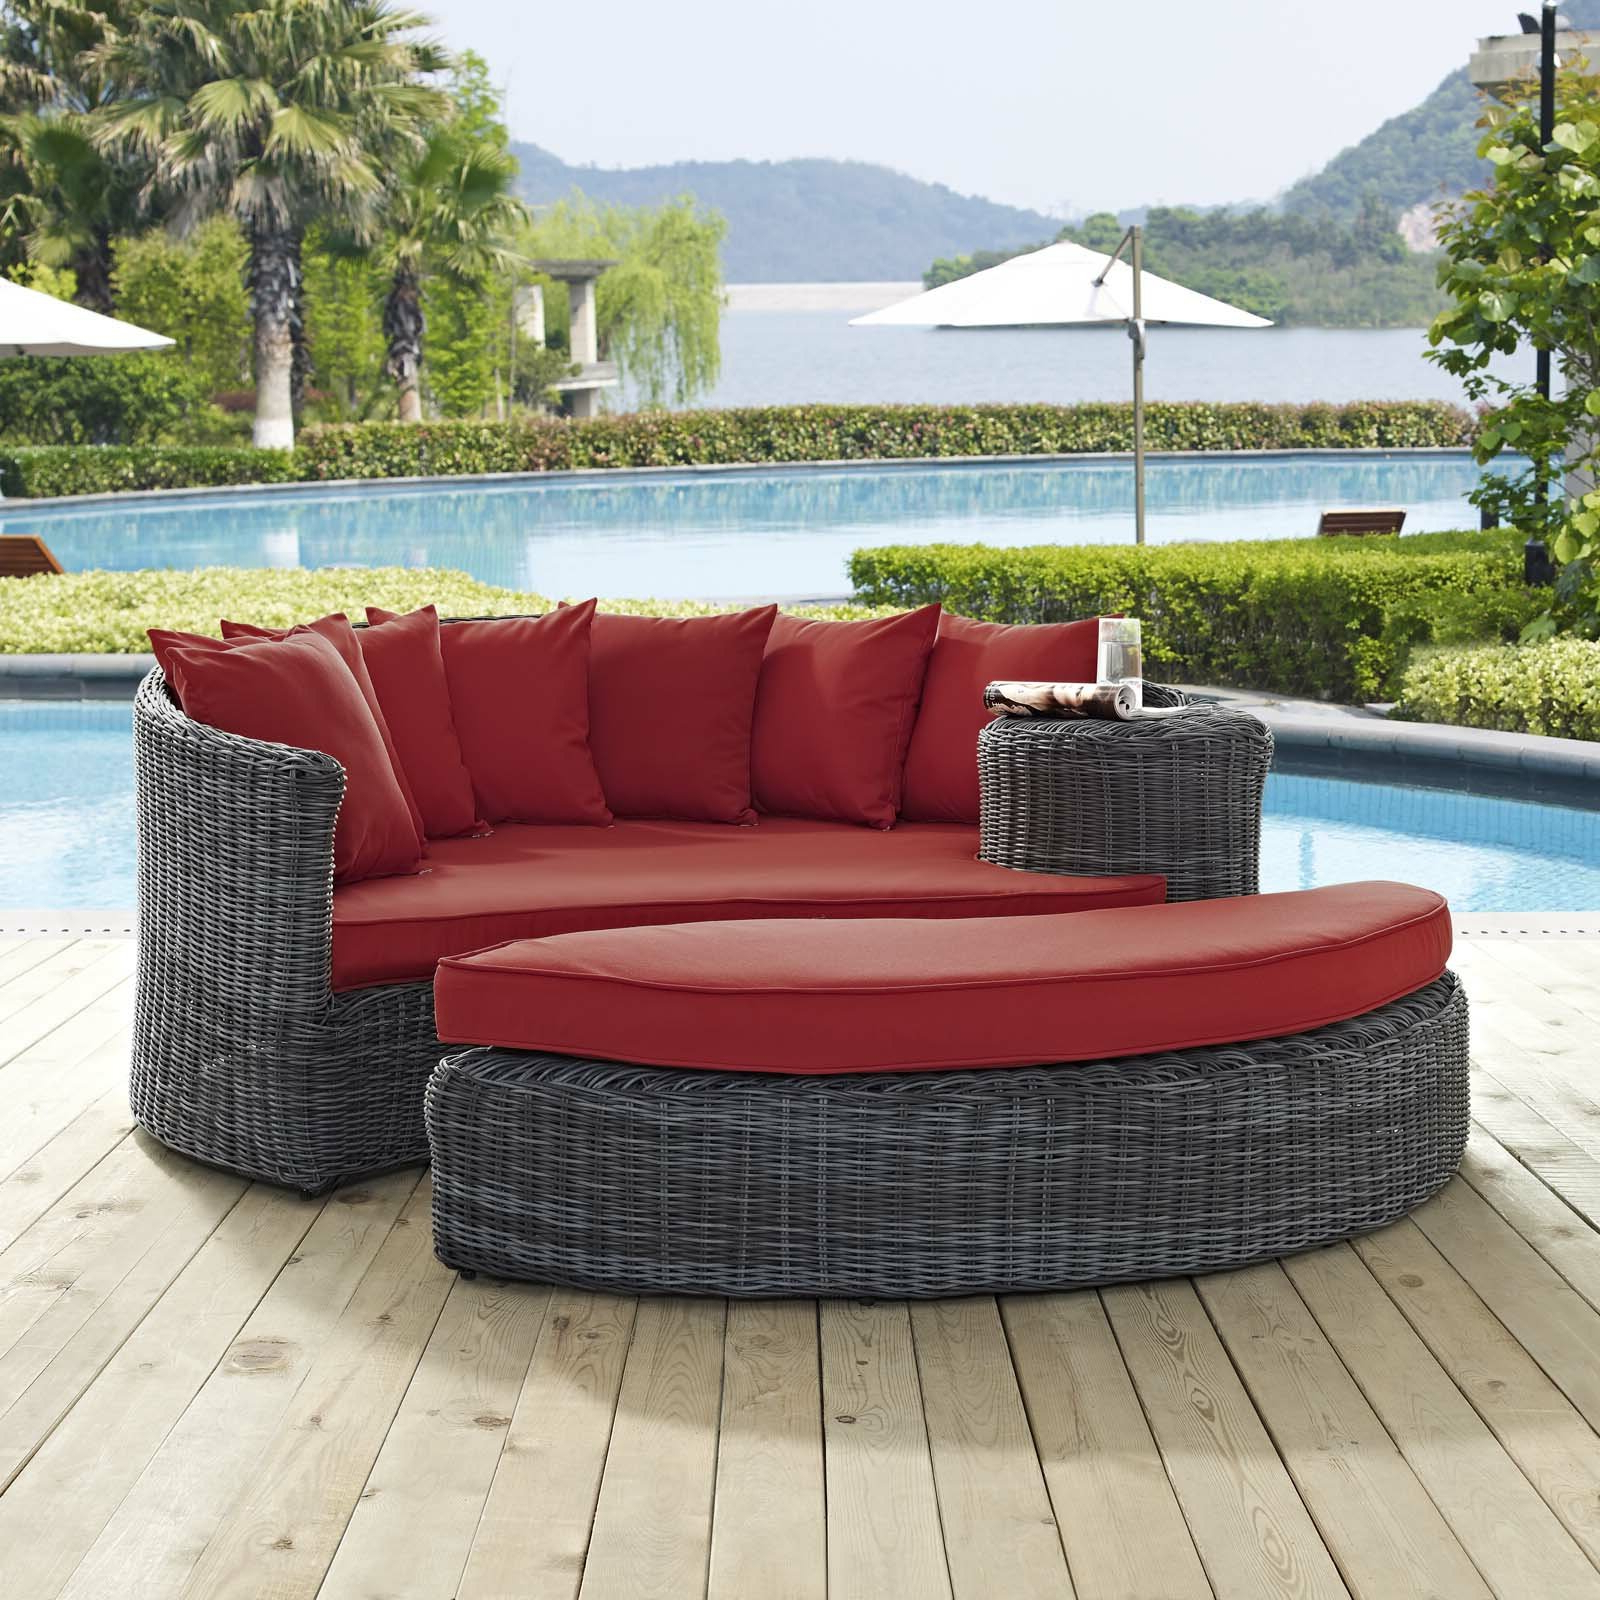 Well Liked Tiana Patio Daybeds With Cushions With Keiran Patio Daybed With Cushions (View 12 of 20)